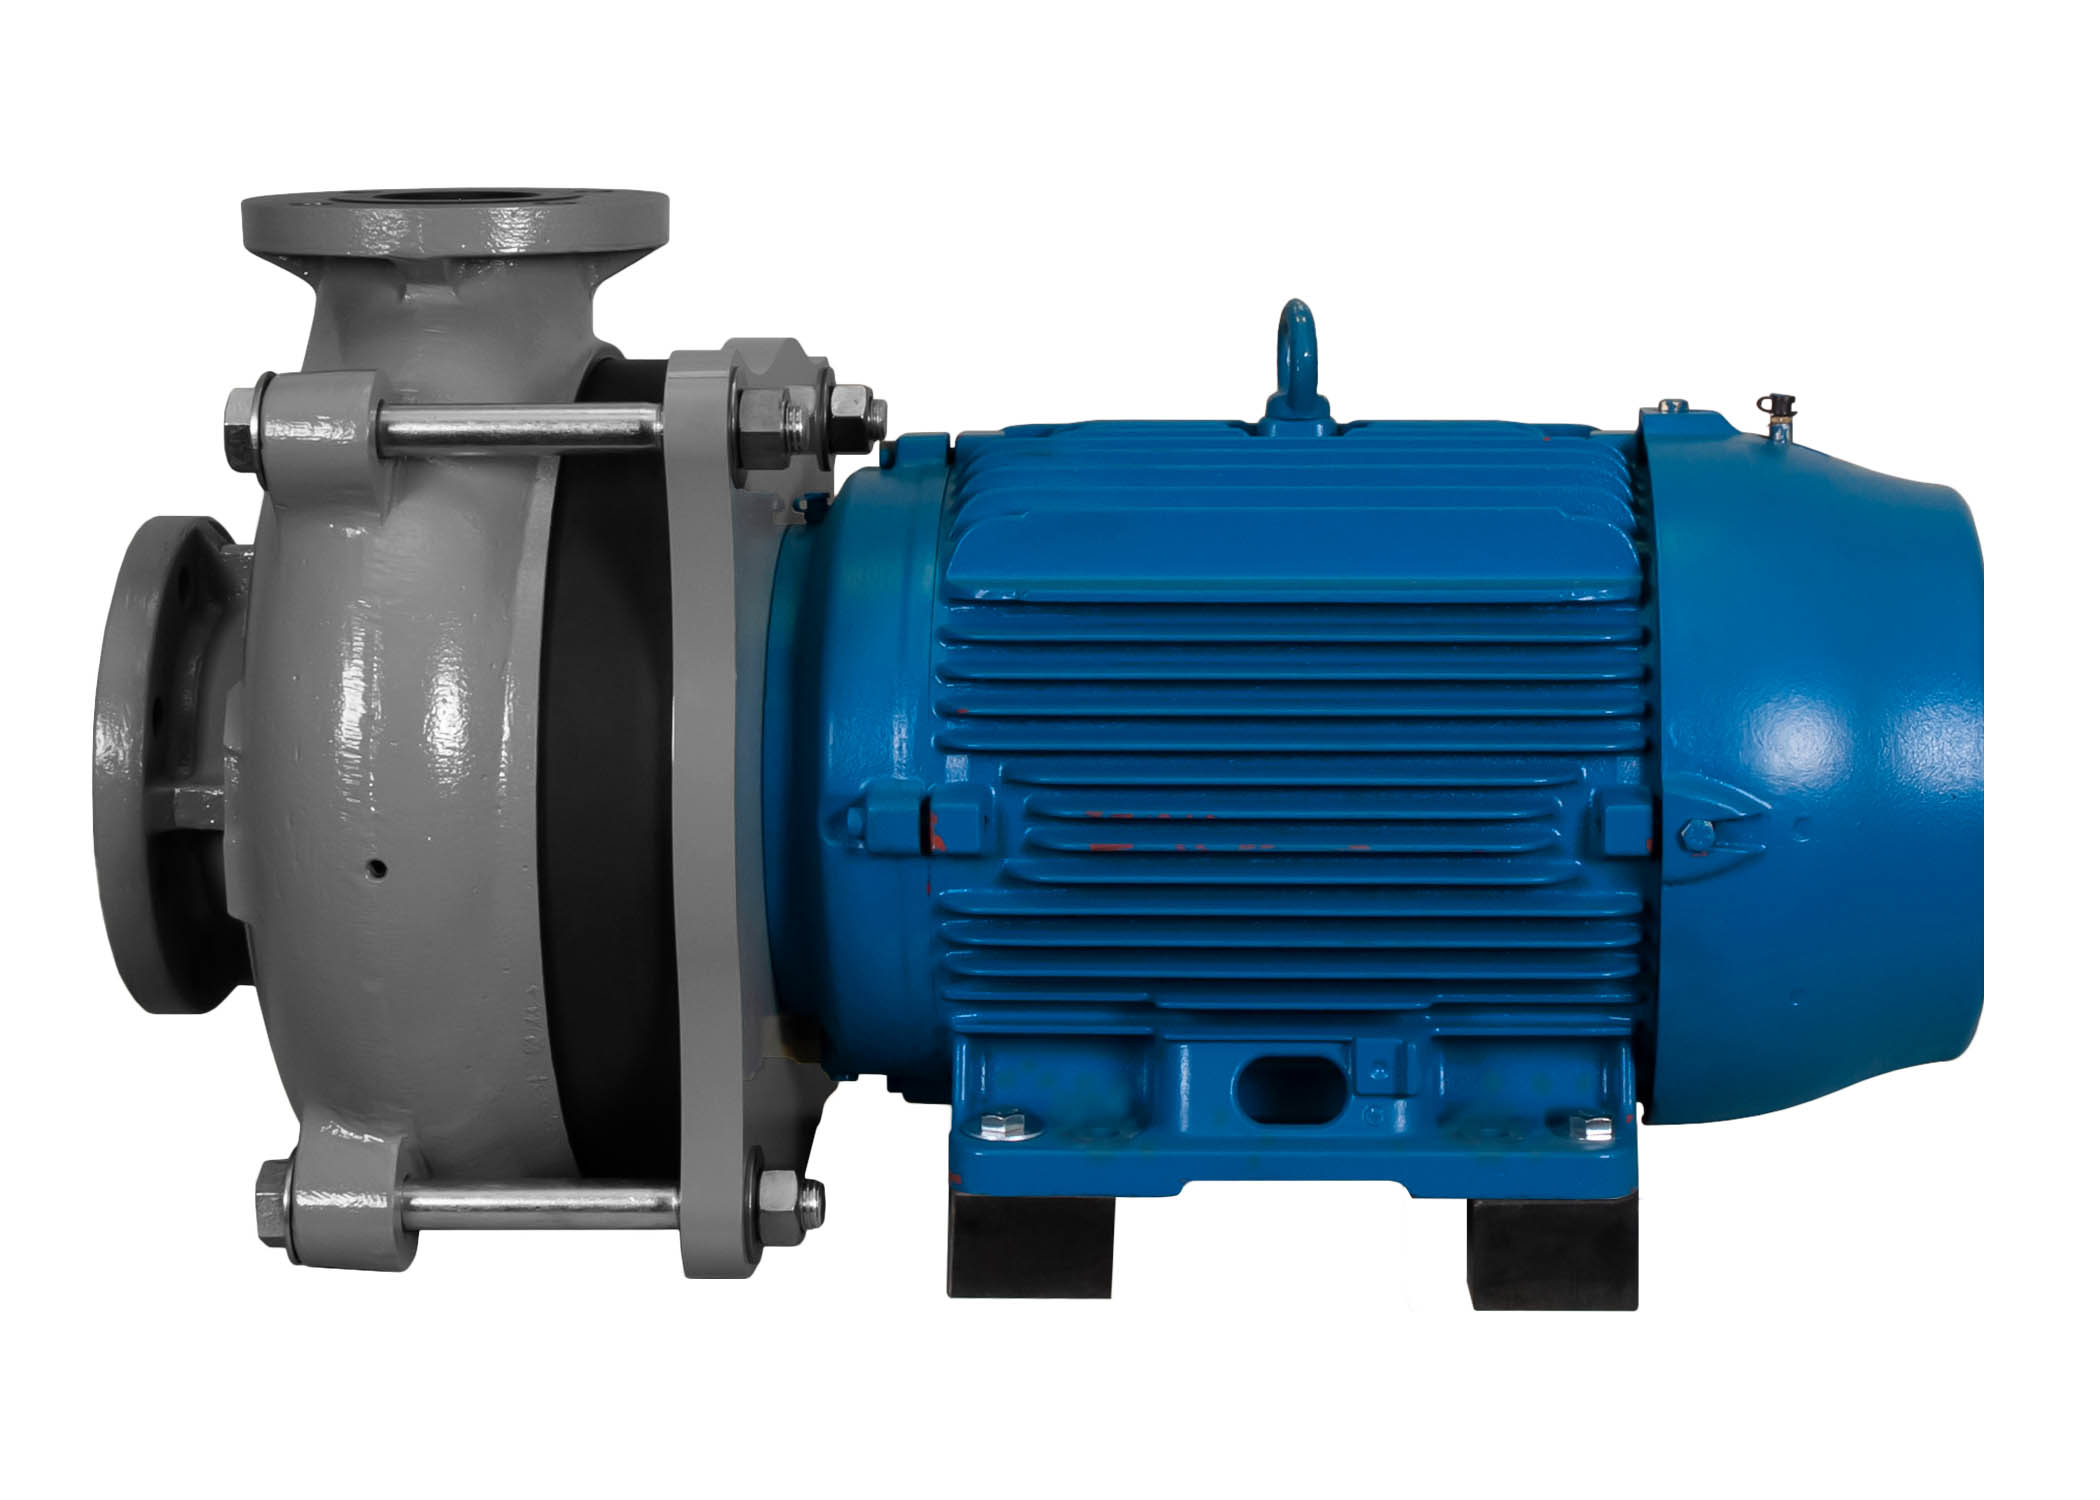 C-Shell 4x3-10 Pump with blue WEG Motor right side view